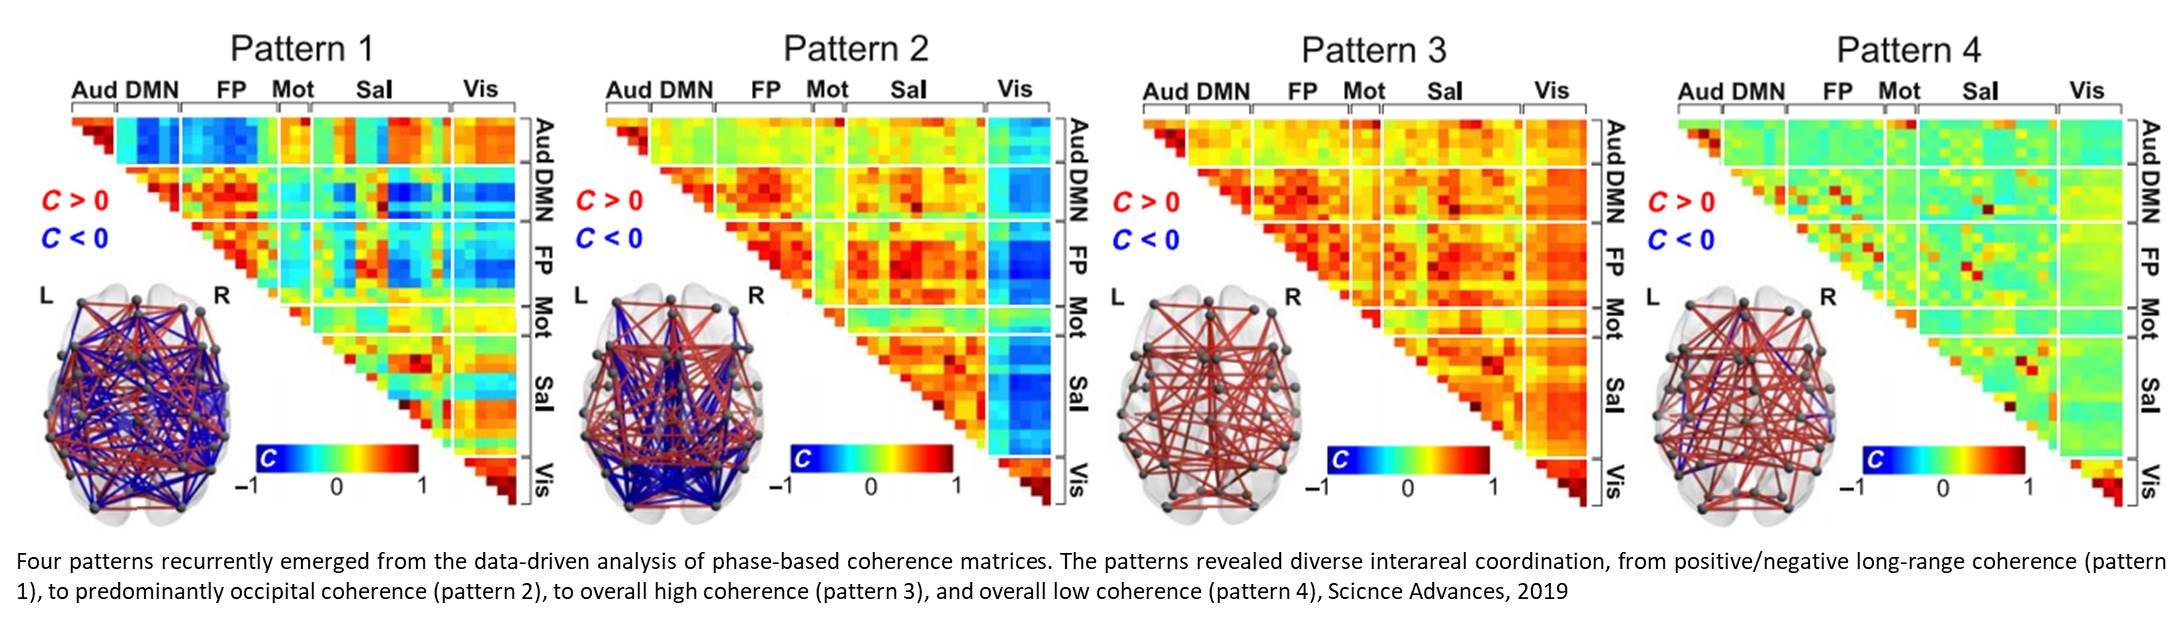 Dynamic complex patterns of brain signal coordination in human consciousness